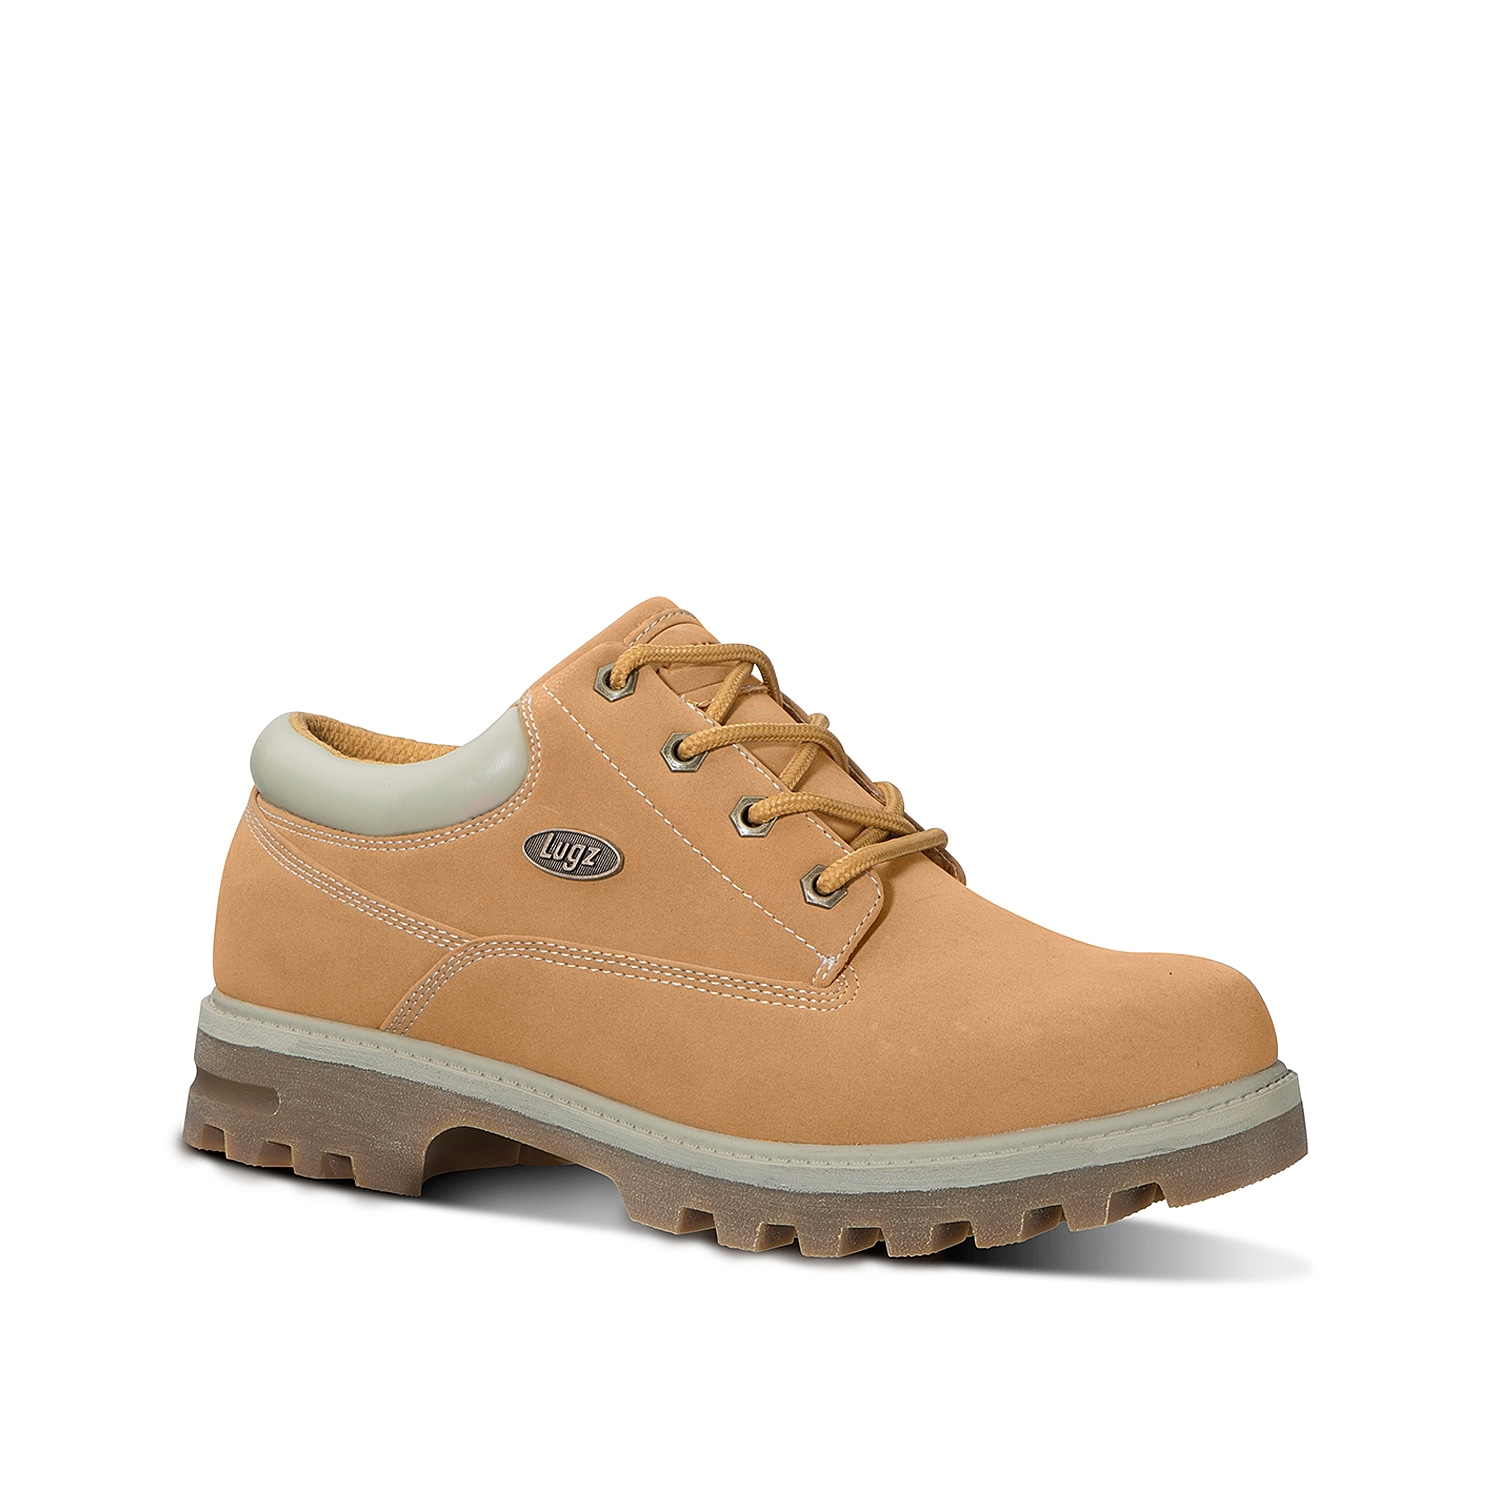 The Empire Lo WR is a water resistant and slip resistant, plain toe boot that features Lugz patented Flexastride memory foam technology. This boot has the perfect blend of style and comfort to protect your feet year round.